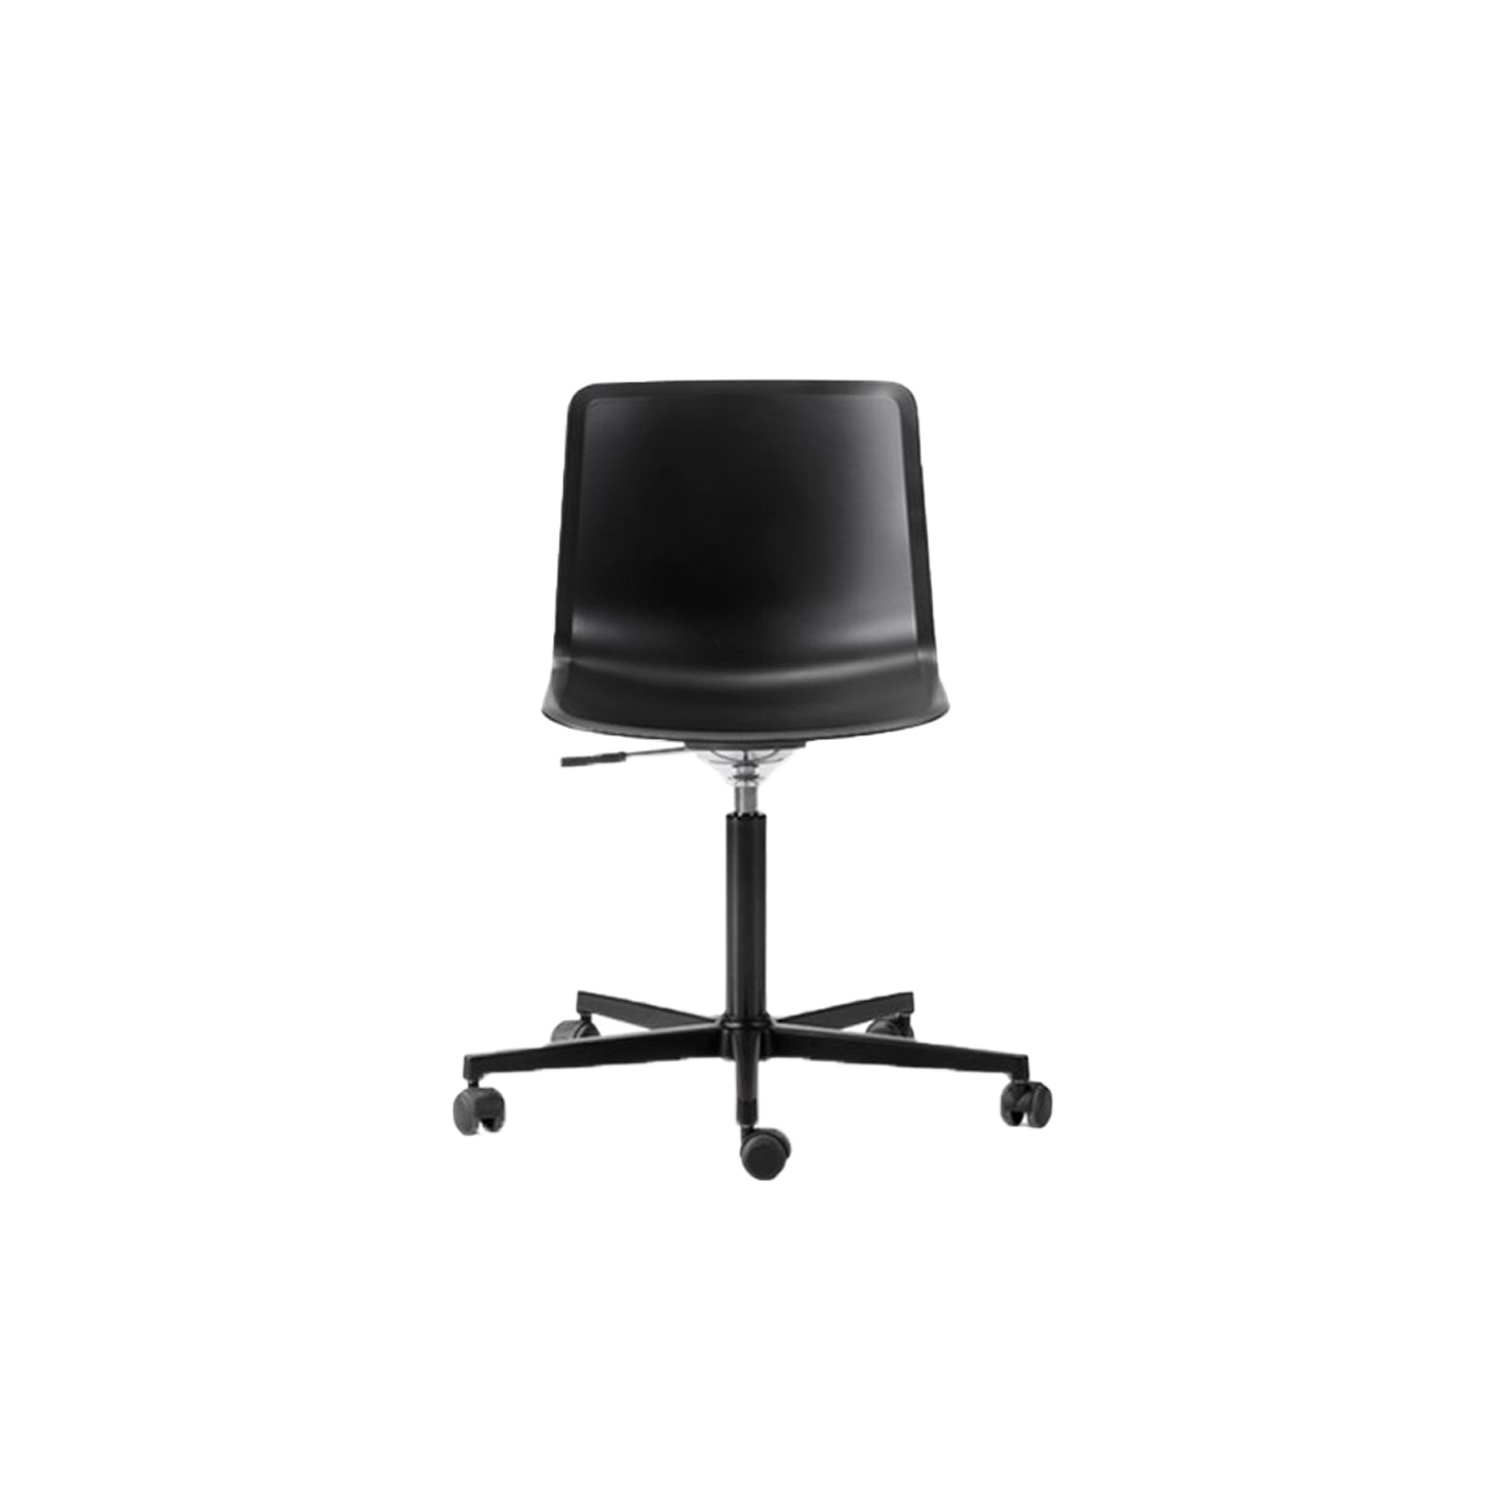 Pato Office 5 Point Swivel Base Chair - Pato Office Chair is fitted with a 5-point star swivel base on casters. The frame has a swivel feature with height adjustable gaslift and a tilt function for comfortable task seating. The chair can be tuned from basic to exclusive with optional upholstery.